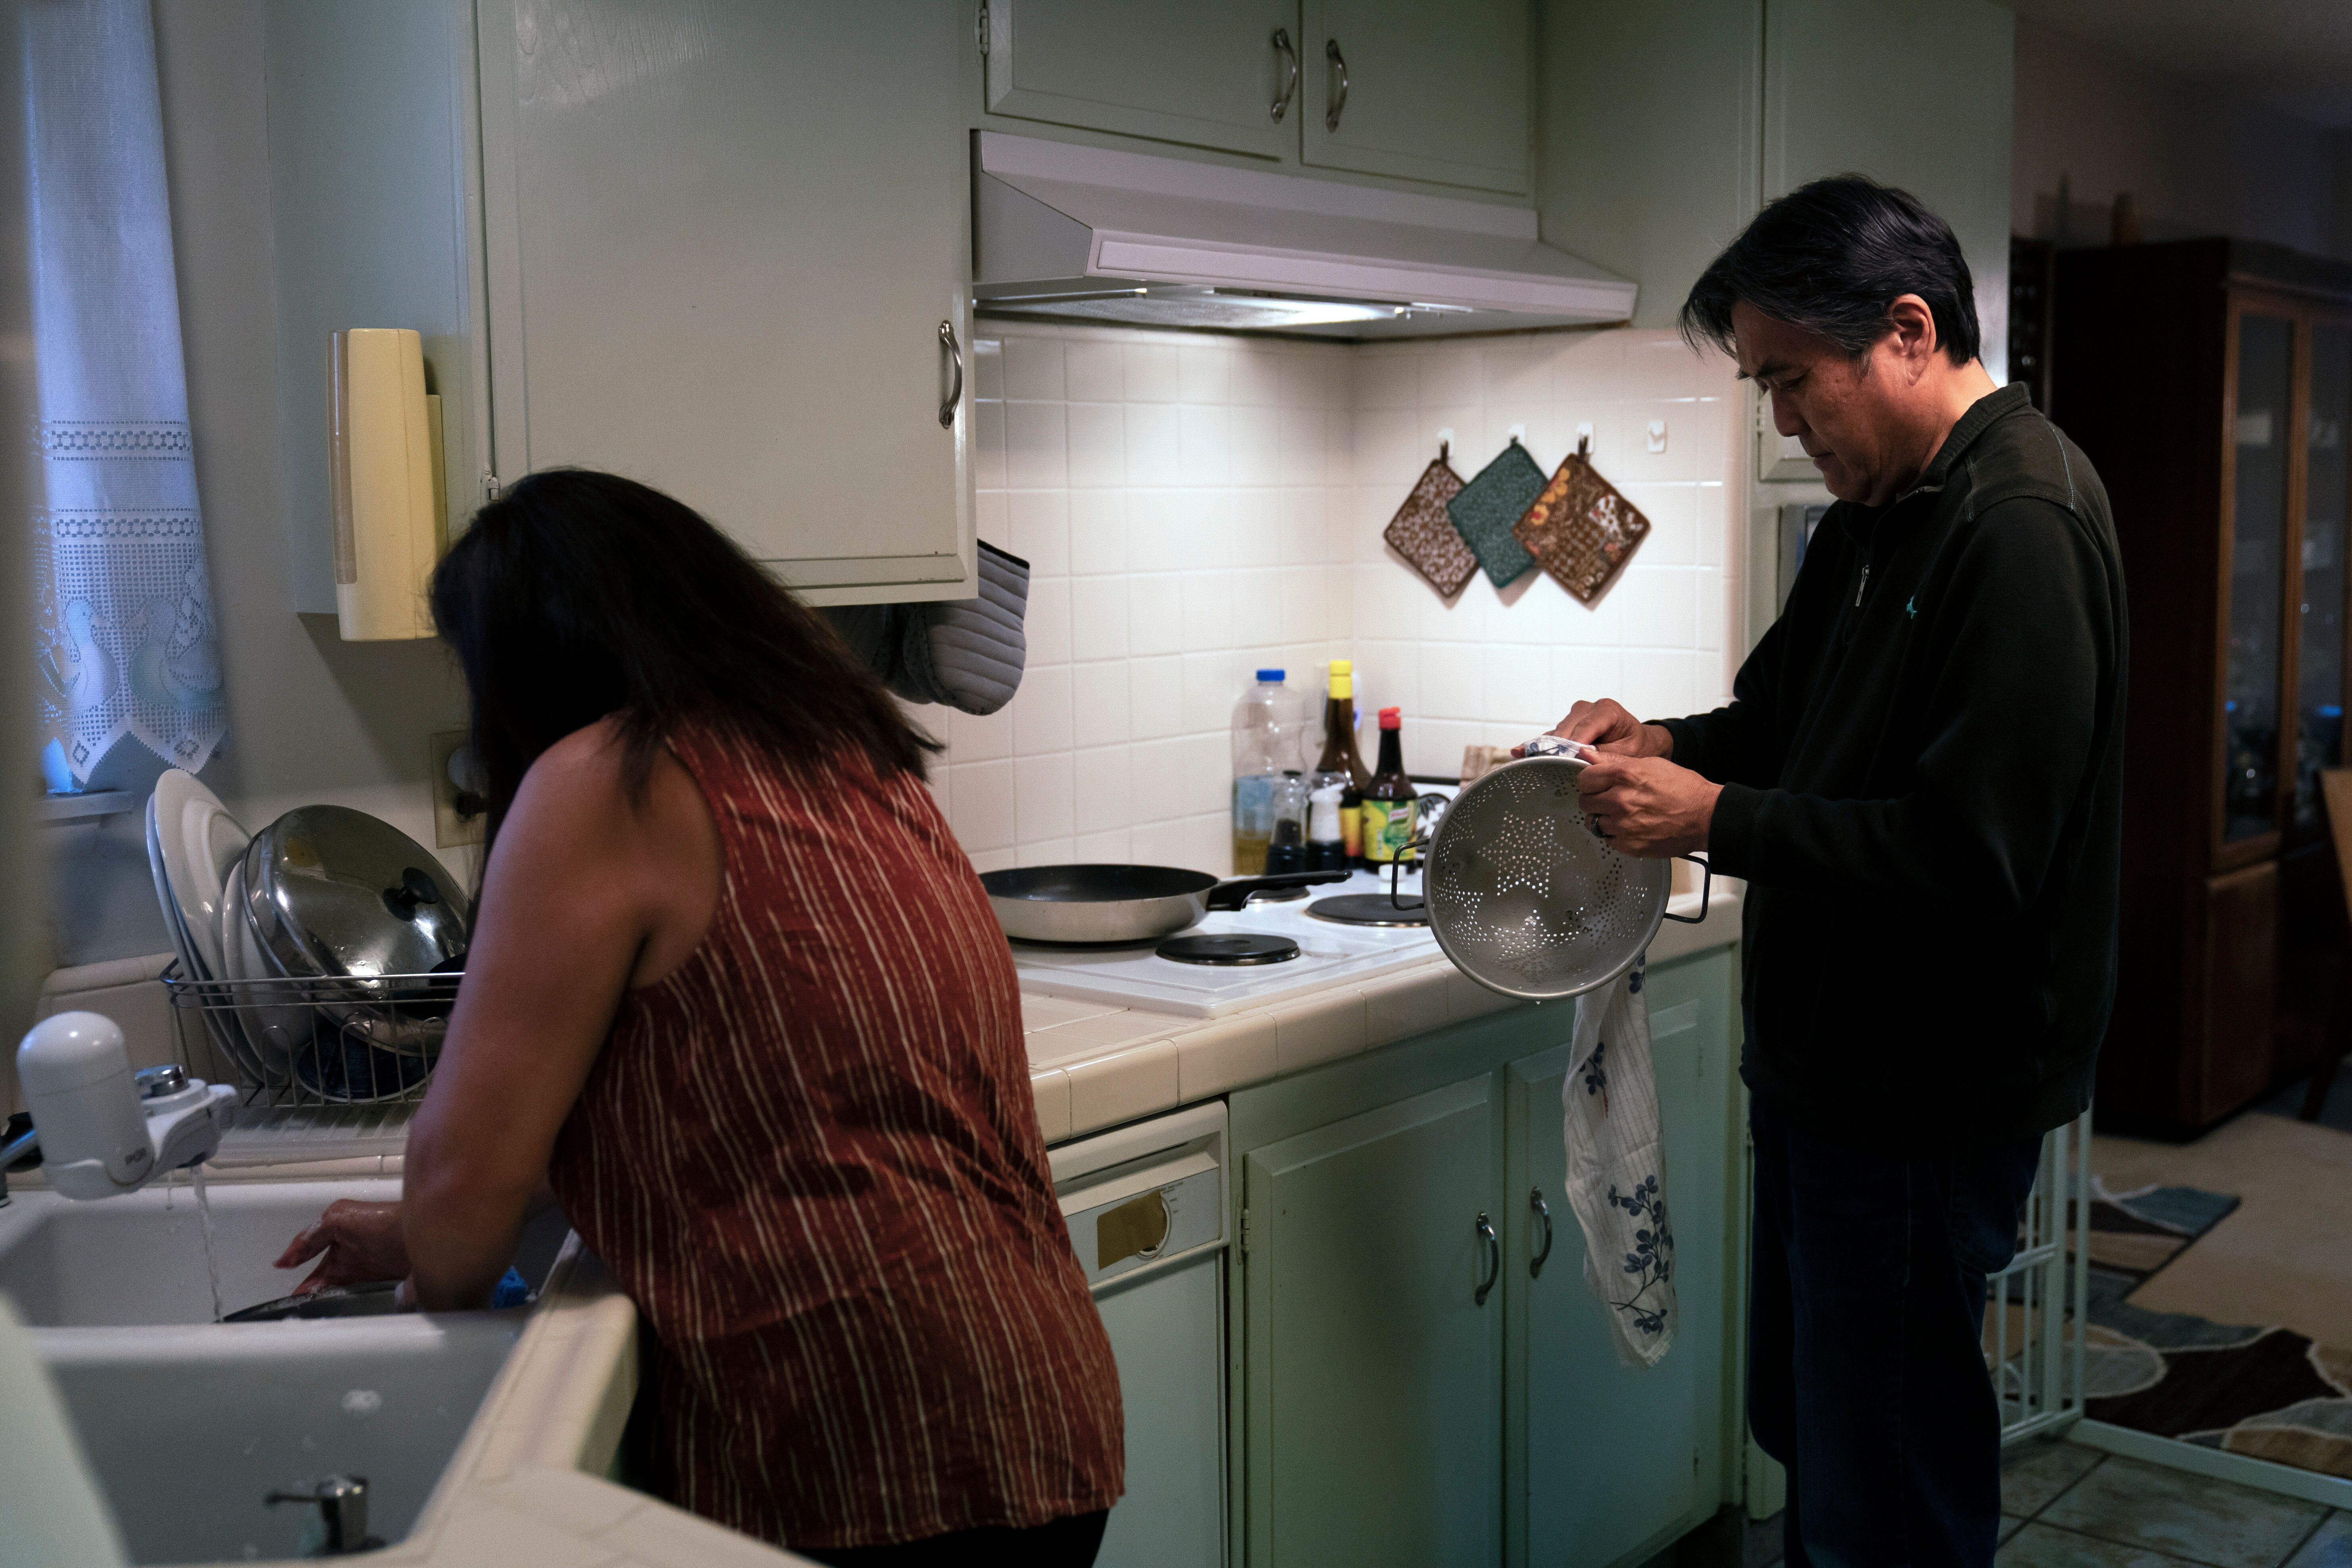 Kerry Osaki, right, helps his wife, Lena Adame, in the kitchen in Fountain Valley, Calif., on Nov. 25, 2020. For years, Osaki